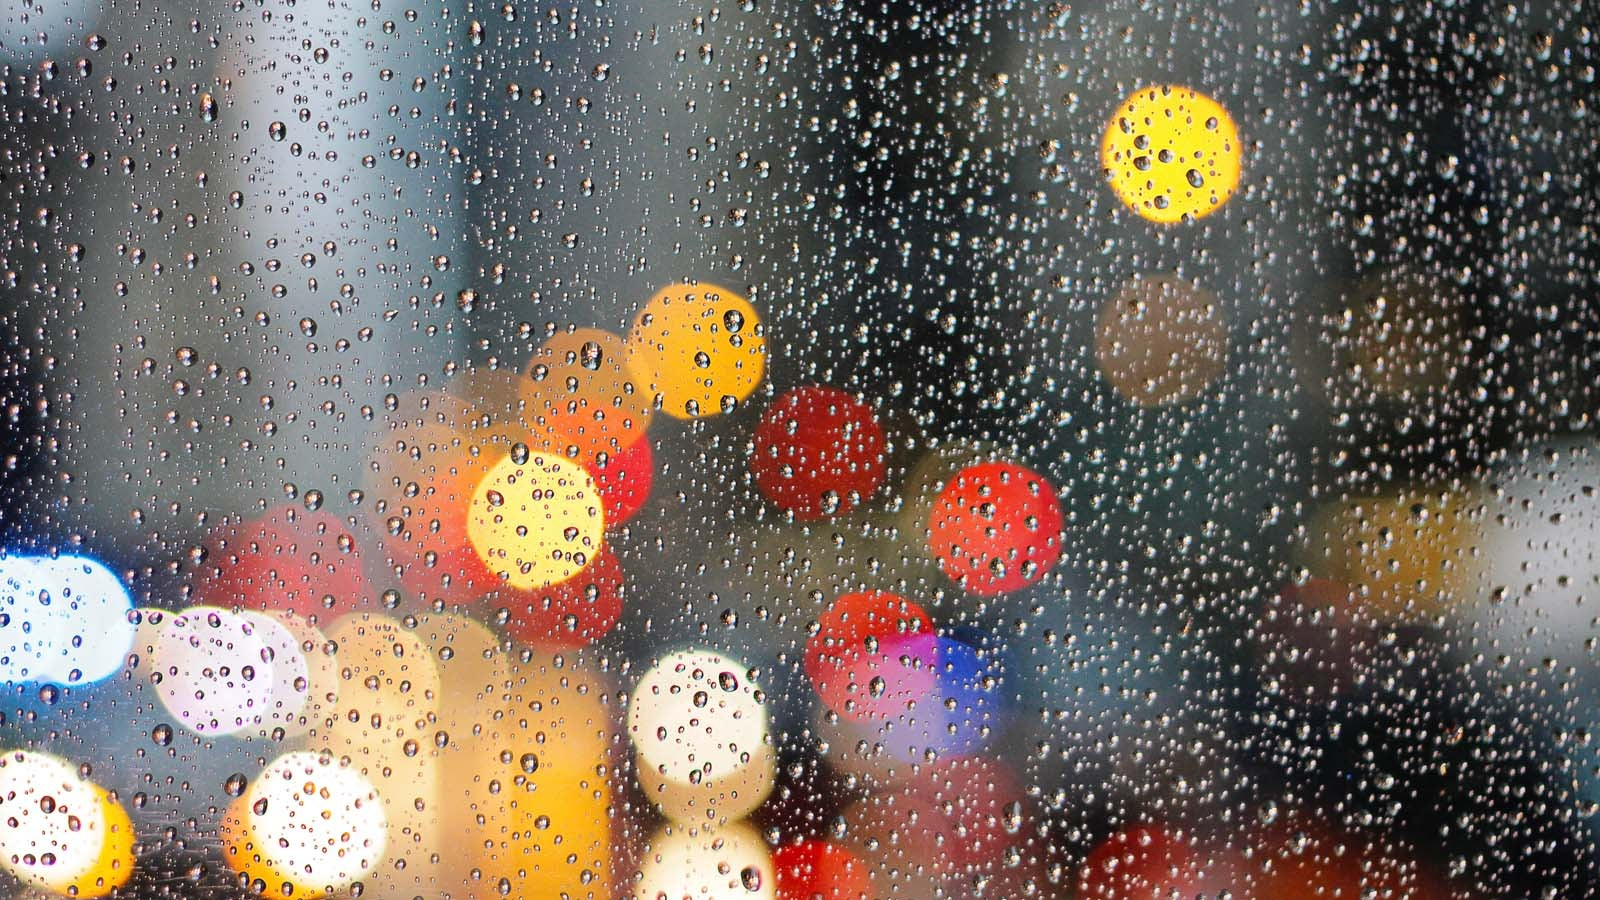 window with water droplets and blurred city lights